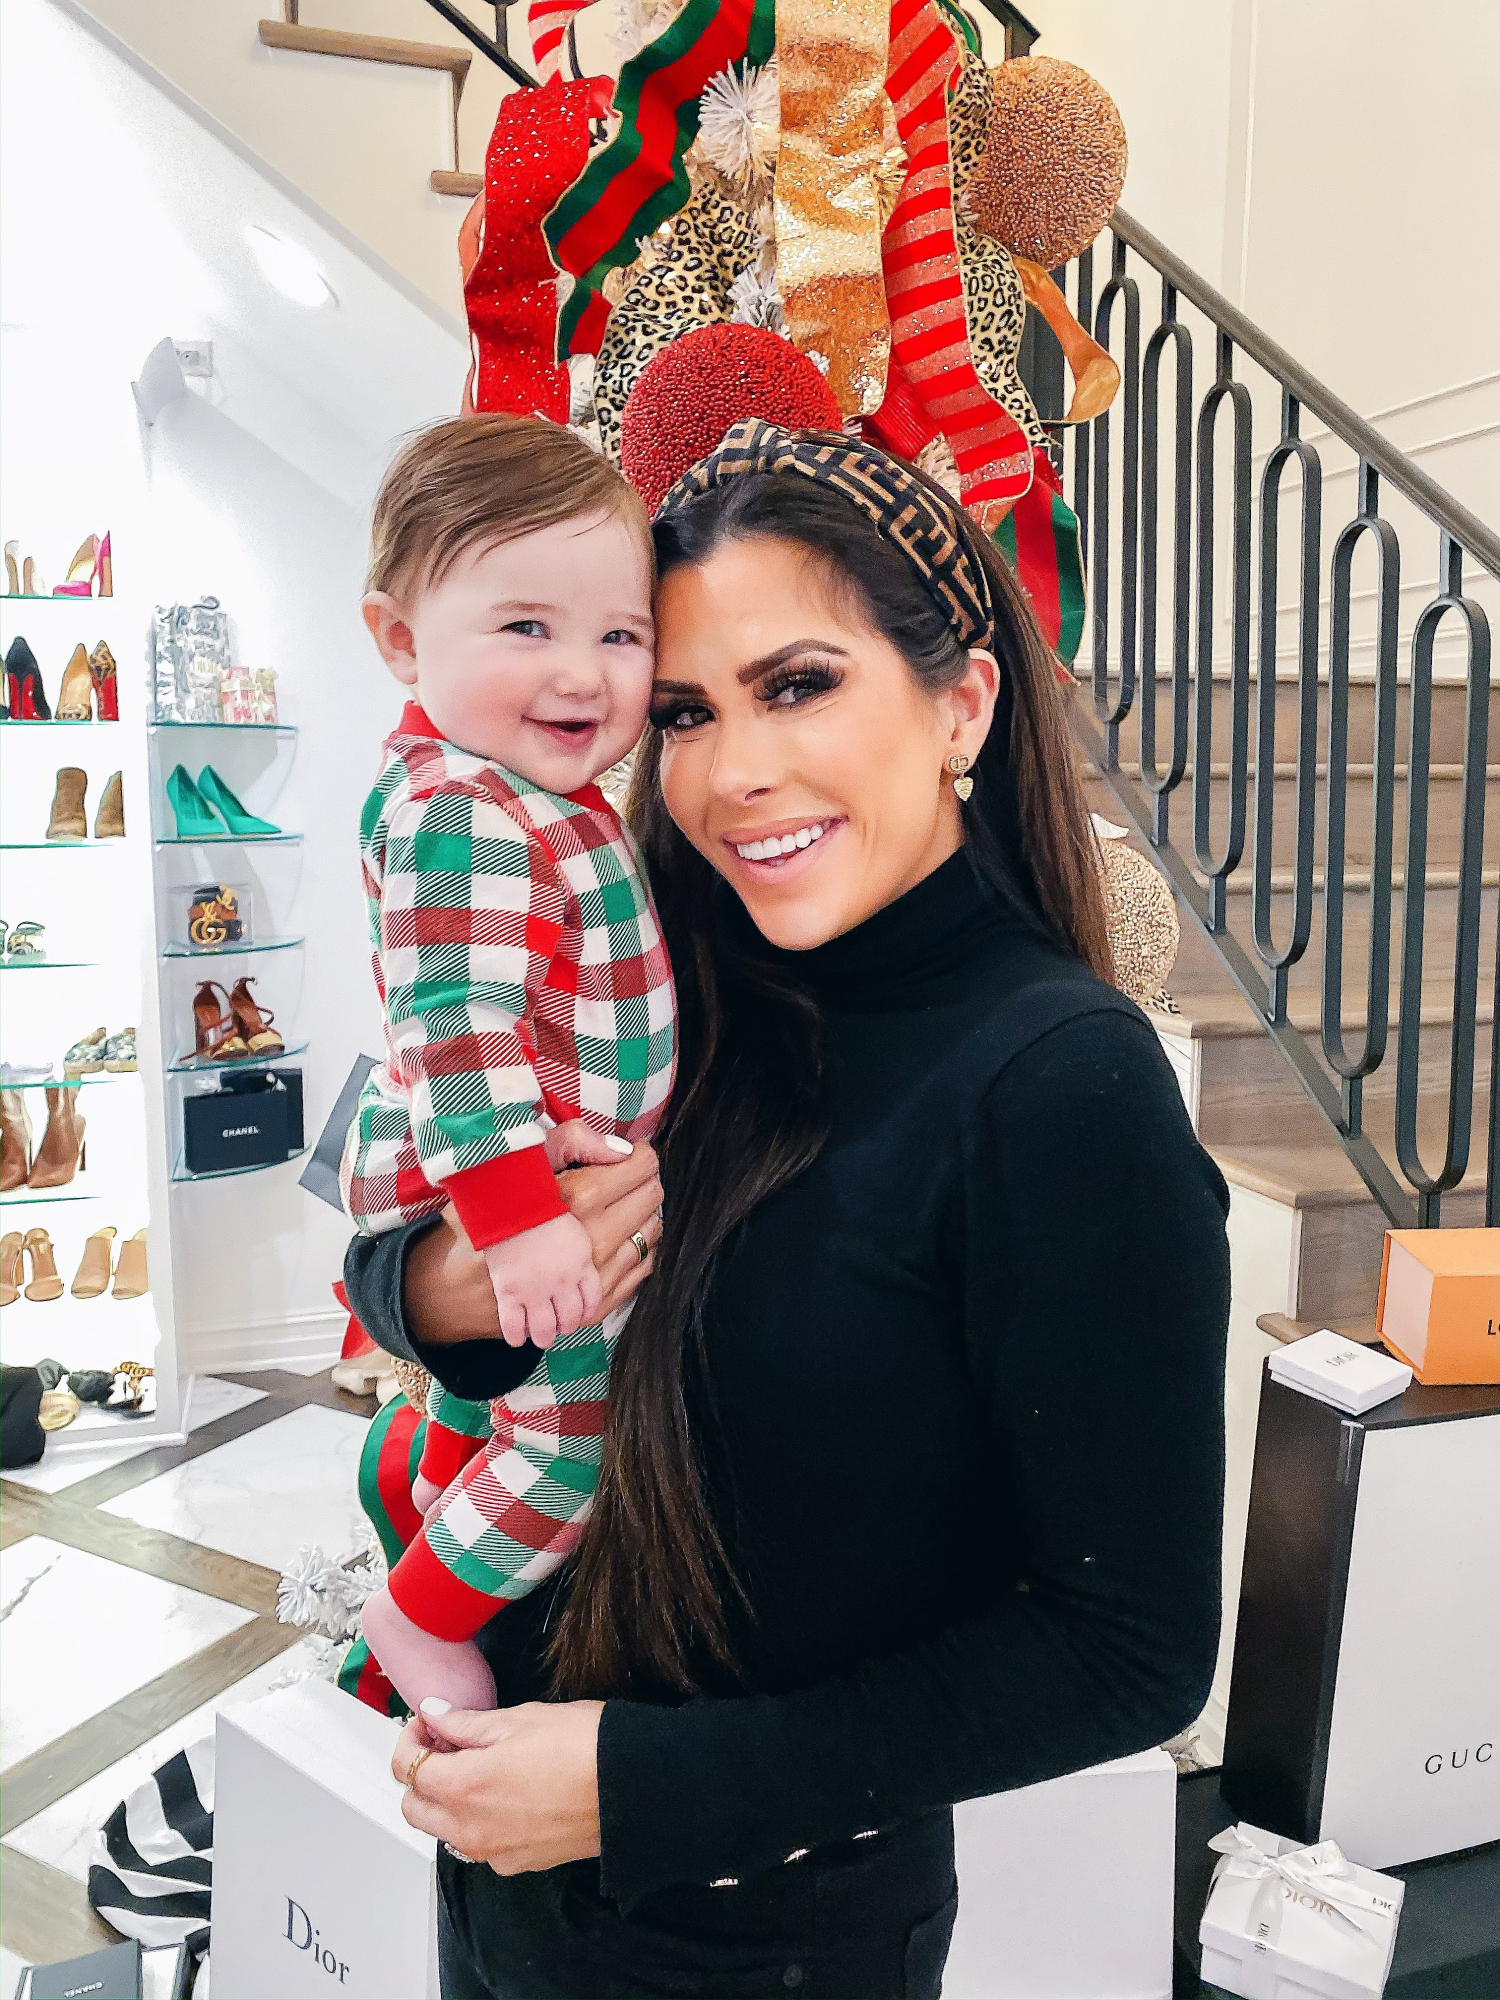 fendi headband, smocked auction christmas pajamas, emily gemma | A YEAR IN REVIEW : MASSIVE 2019 INSTAGRAM RECAP by popular Oklahoma life and style blog, The Sweetest Thing: image of a woman holding her baby and wearing an H&M Fine-knit Turtleneck Sweater and Amazon Fendi Dupe headband.